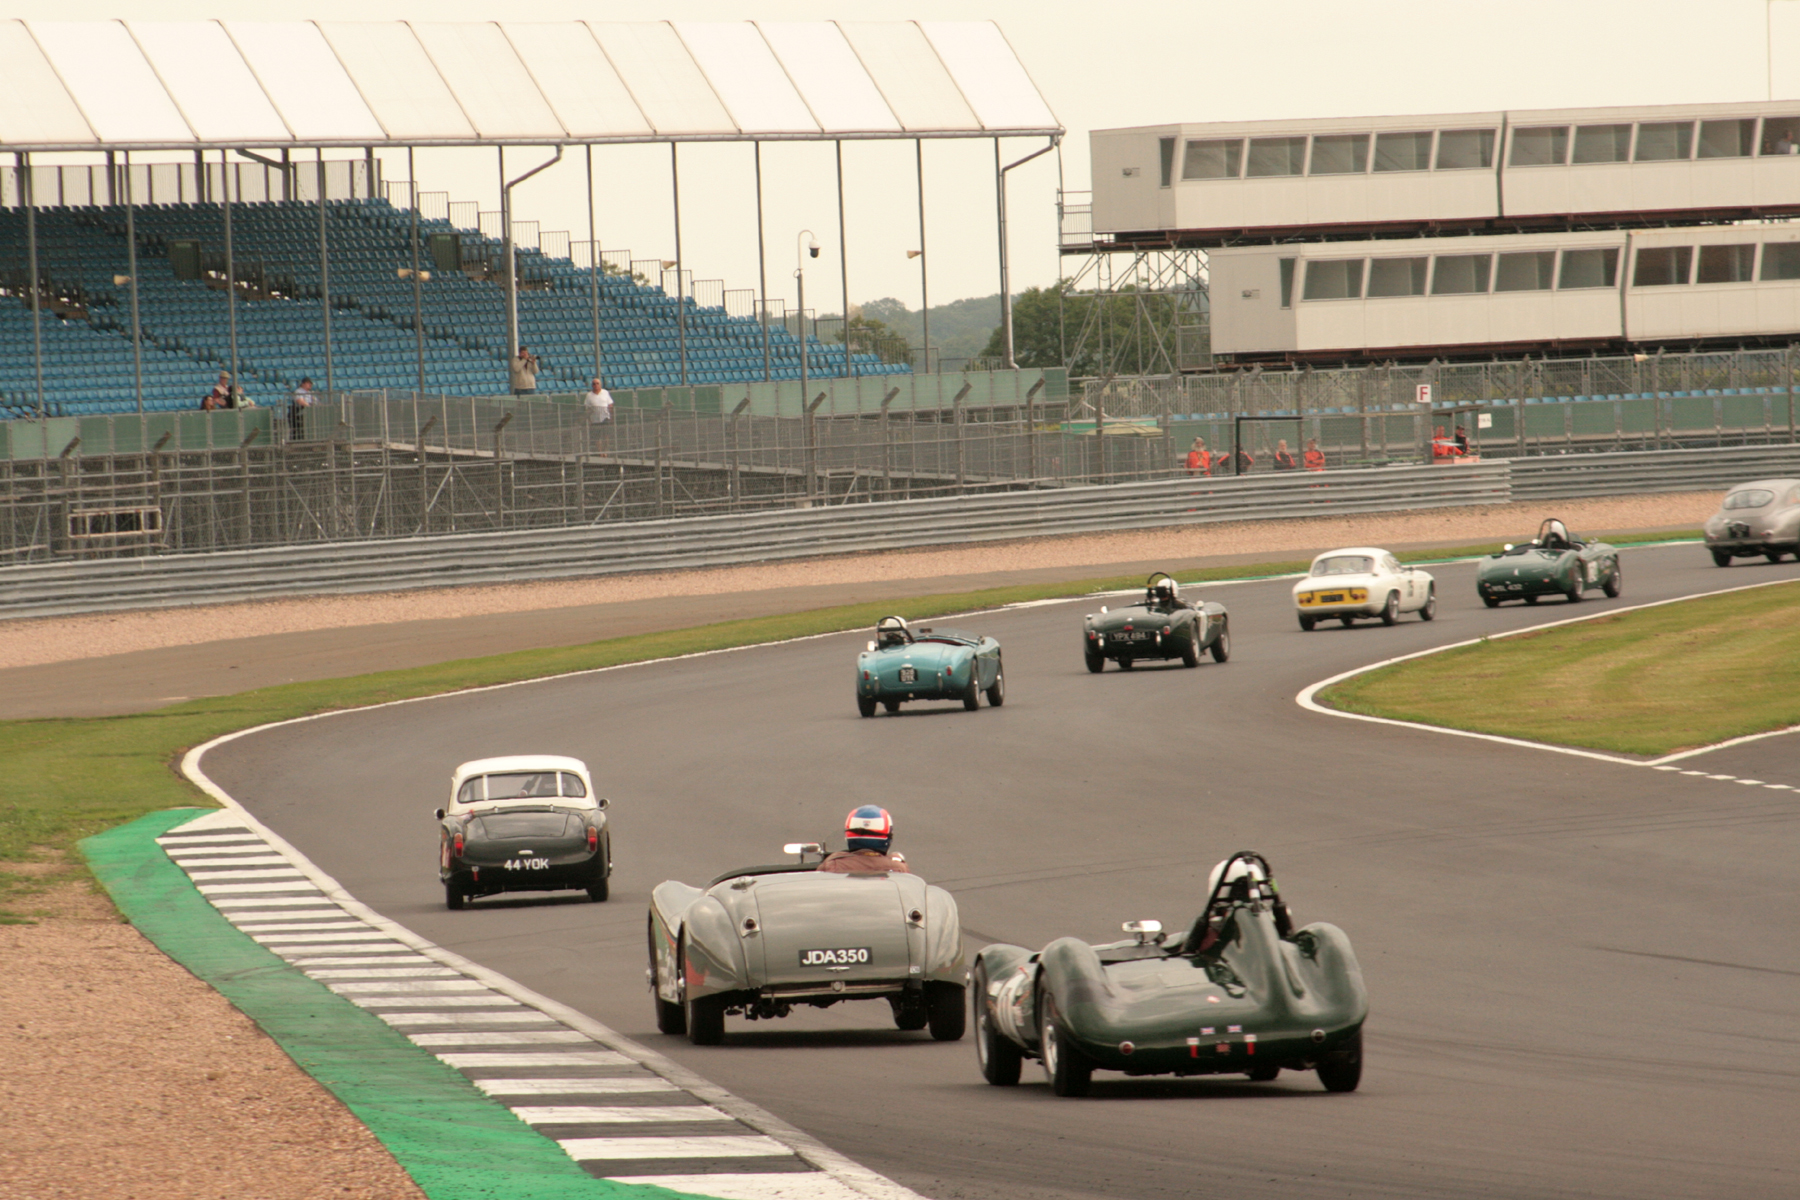 Glorious sight streaming through Woodcote - Tim Stamper with Aston DB2/4 going out of picture heads Jim Campbell, Robin Ellis, Tim Pearce, Adrian King, and now slightly detached Mark Hoble, John Harper & Alex Quattlebaum - see text above  Photo - JT